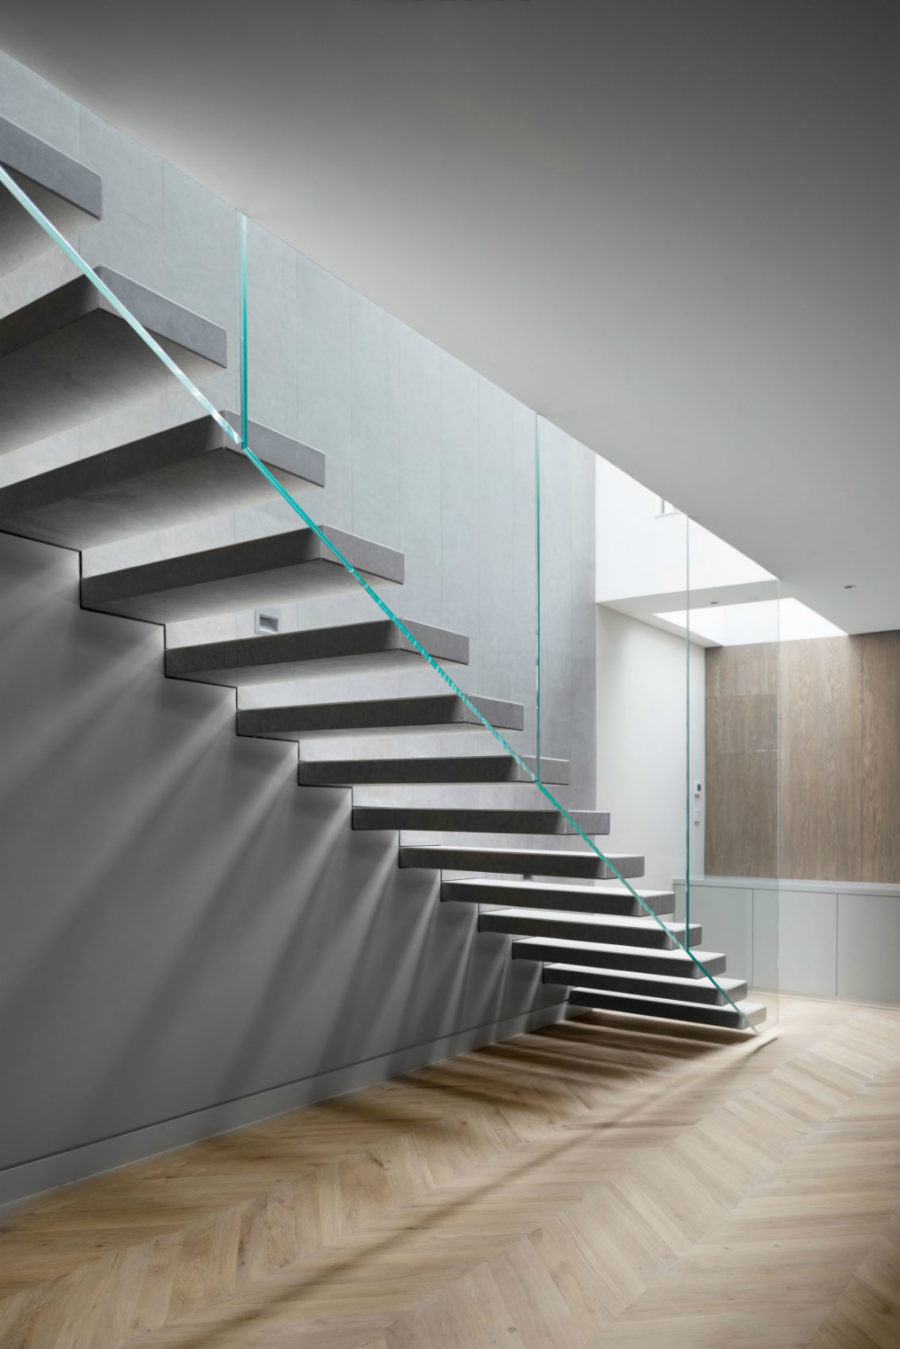 Staircase glass railing leaves the space open and airy